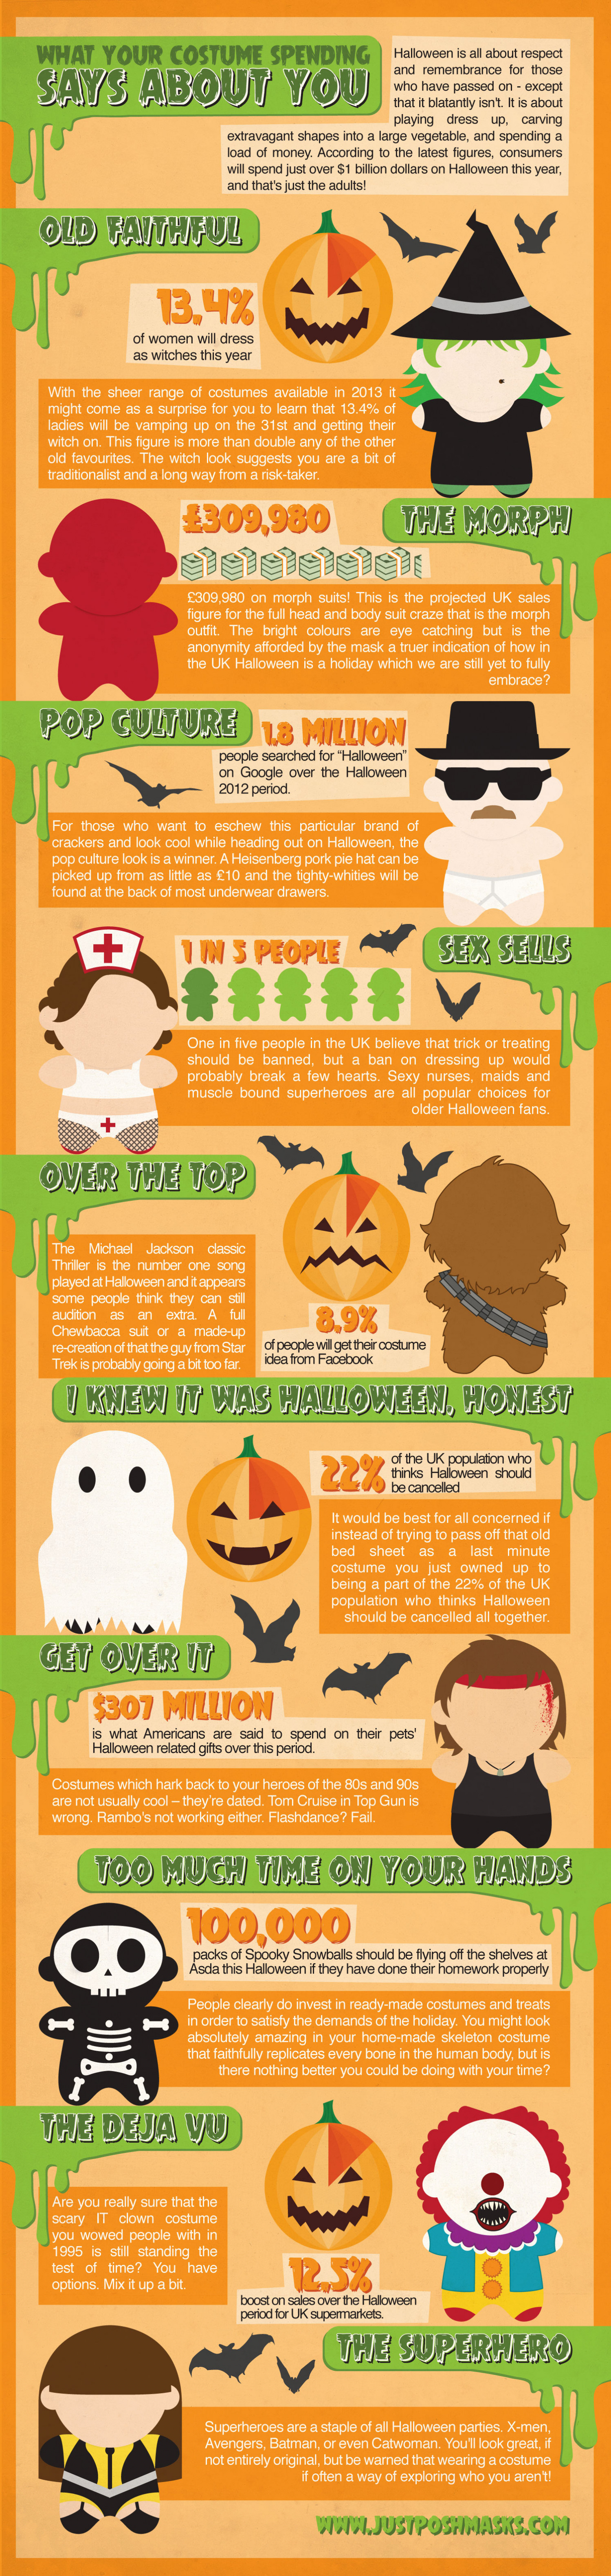 What Your Halloween Costume Says About You Infographic